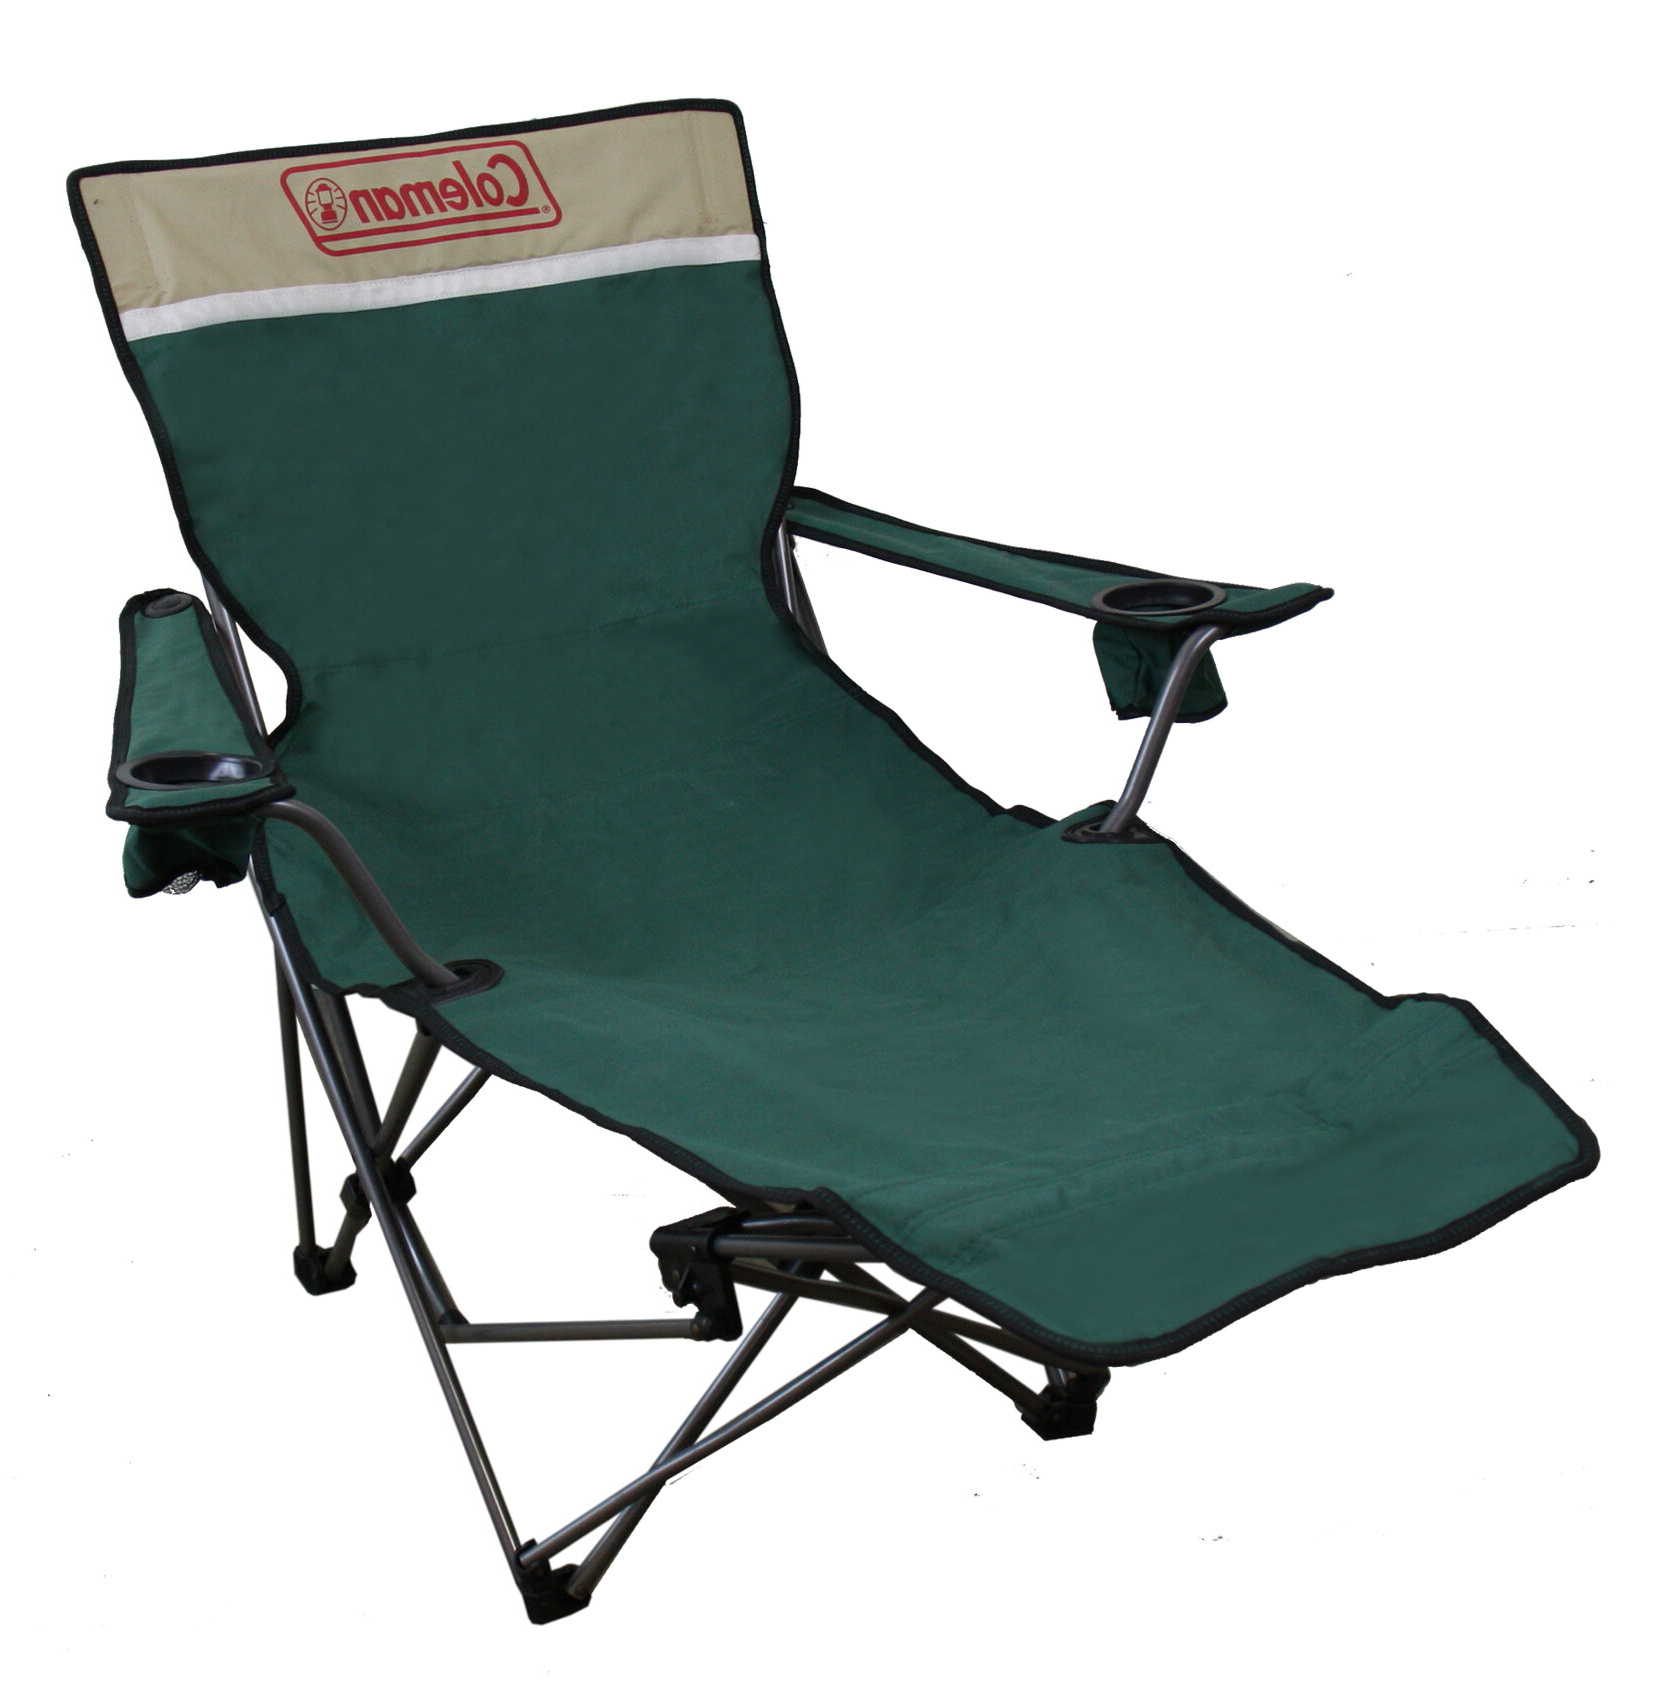 Portable Extendable Folding Reclining Chairs Regarding 2020 Portable Lounge Reclining Camping Chair With Cushion (Gallery 11 of 25)